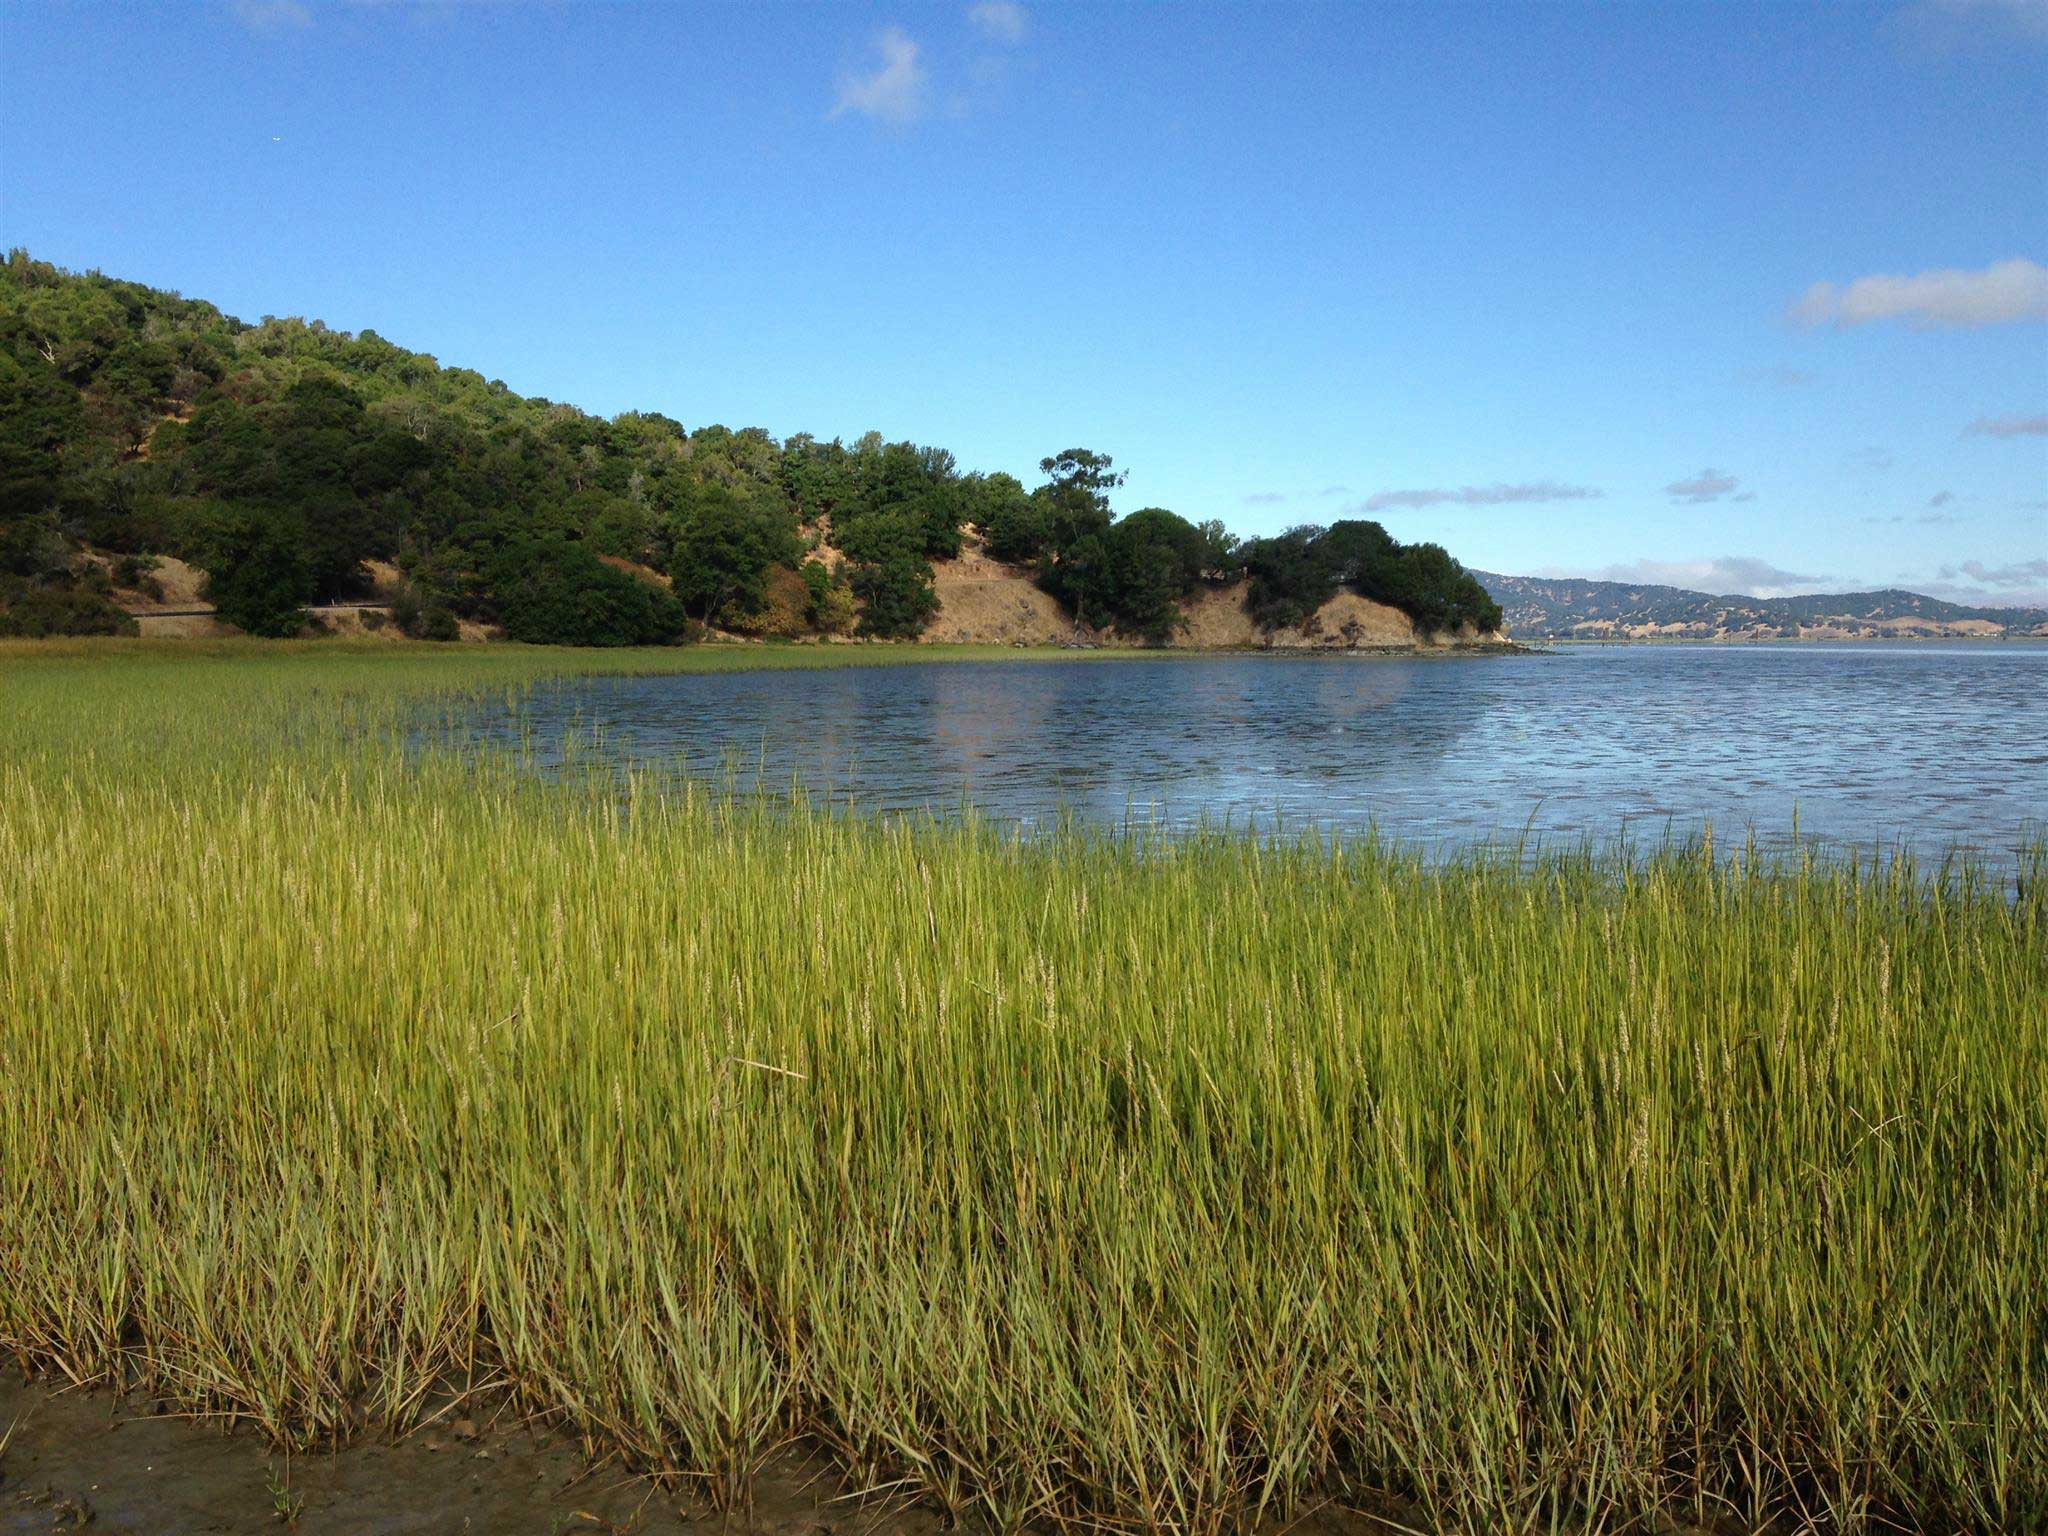 Salt Marsh, San Francisco Bay, Marin County